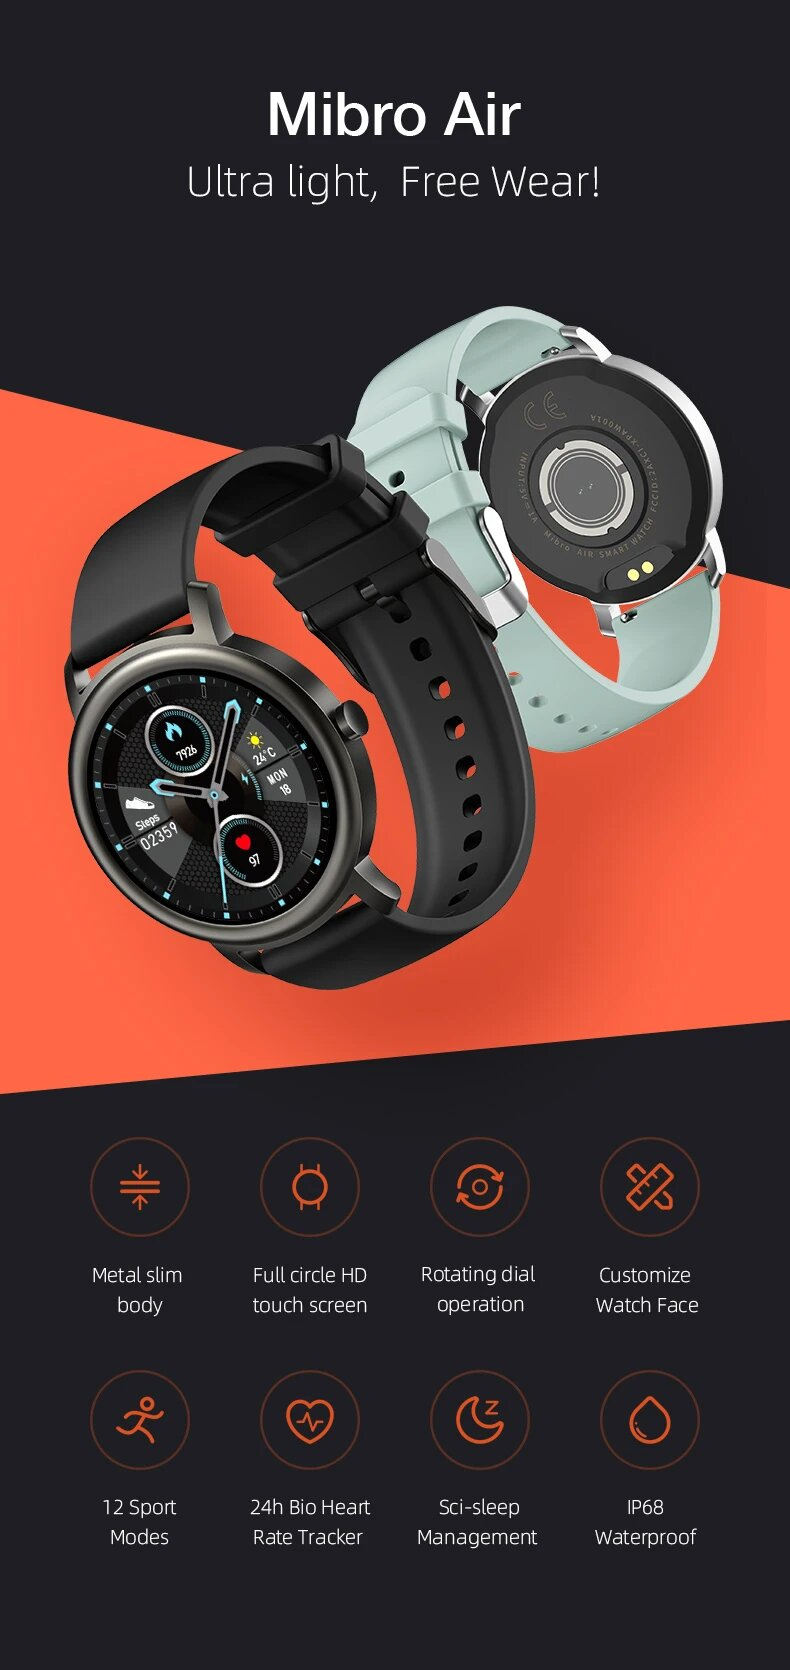 Xiaomi-Mibro-Air-Smart-Watch-in-pakistan-bhsellers.pk-Light-weight